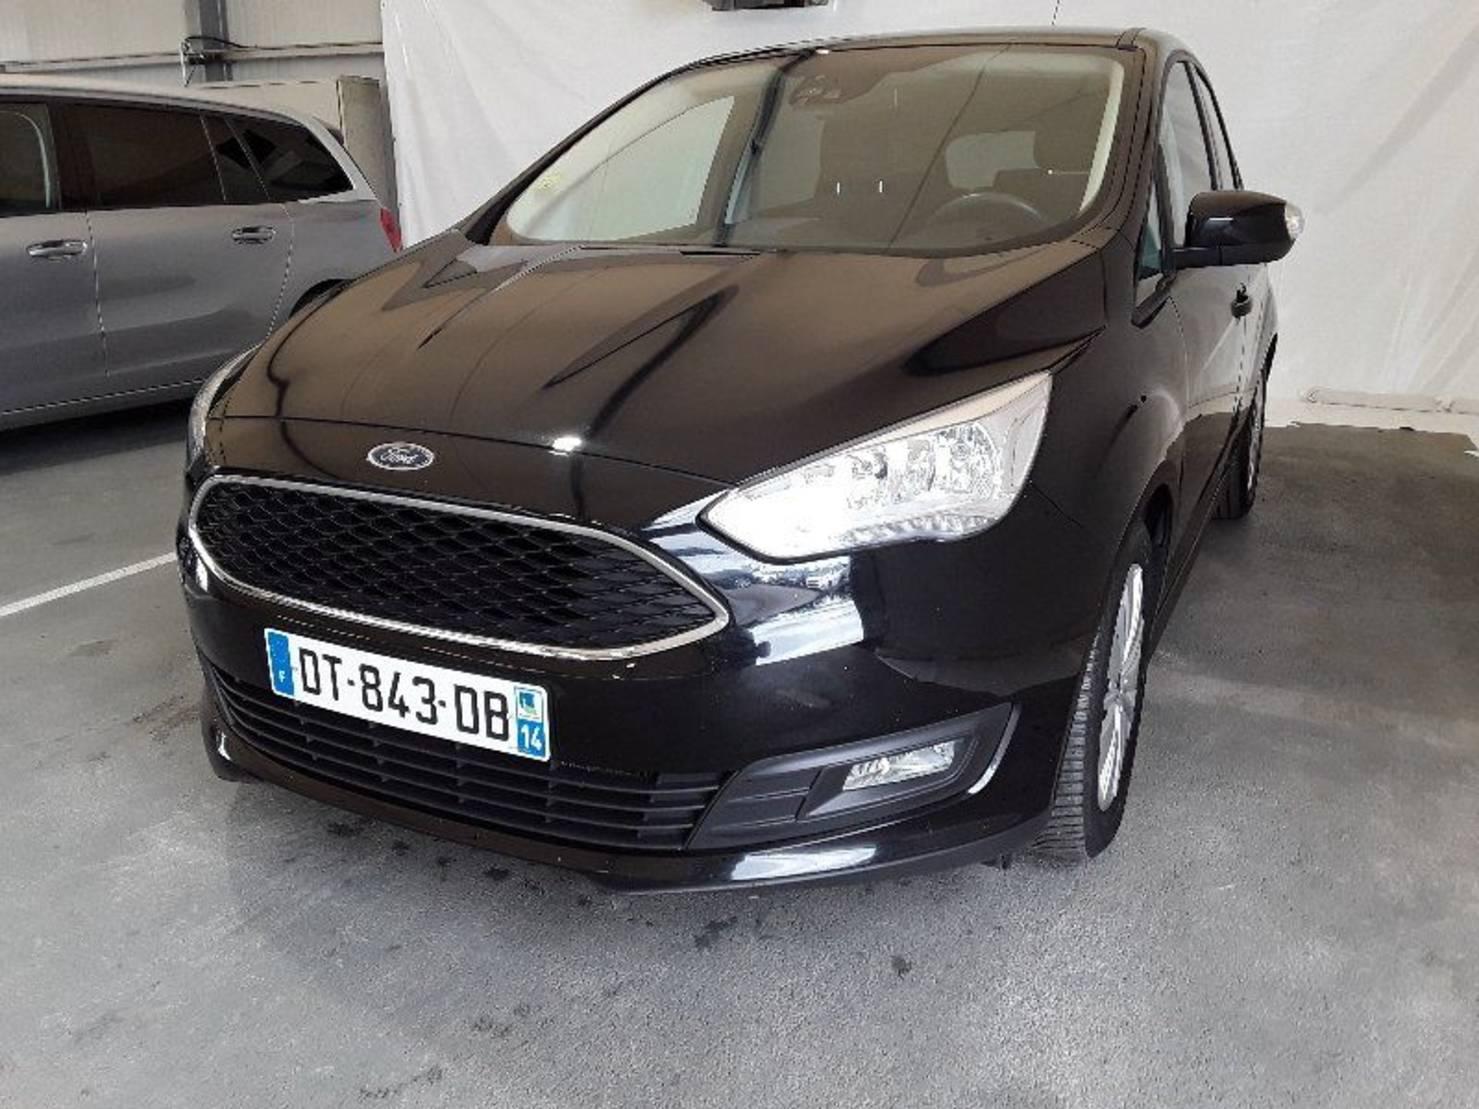 Ford C-MAX 2.0 TDCi 150 S&S, Business Nav Powershift A detail2